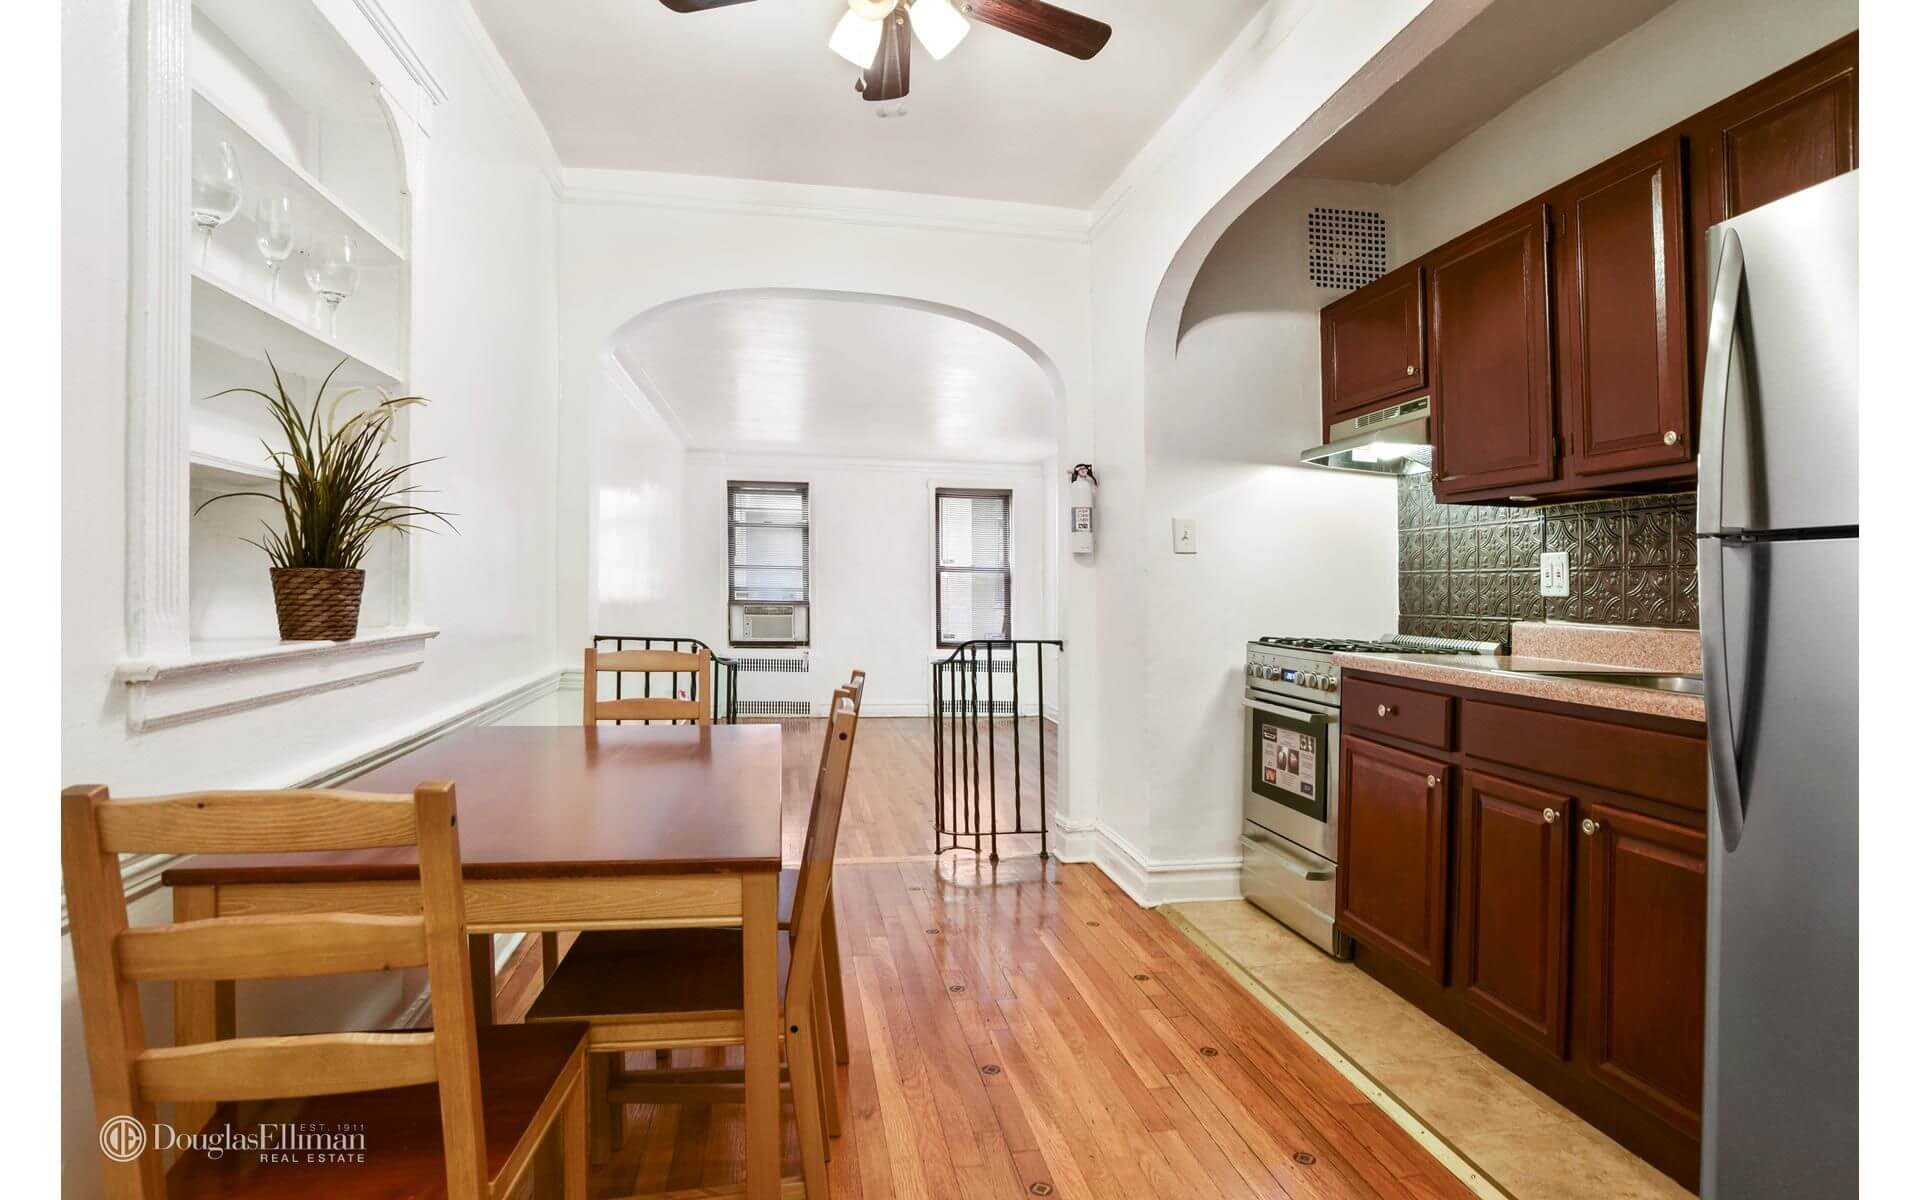 laminate flooring sunken living room storage shelves for brooklyn apartments sale in flatbush at 3220 avenue h brownstoner condo co op of the day